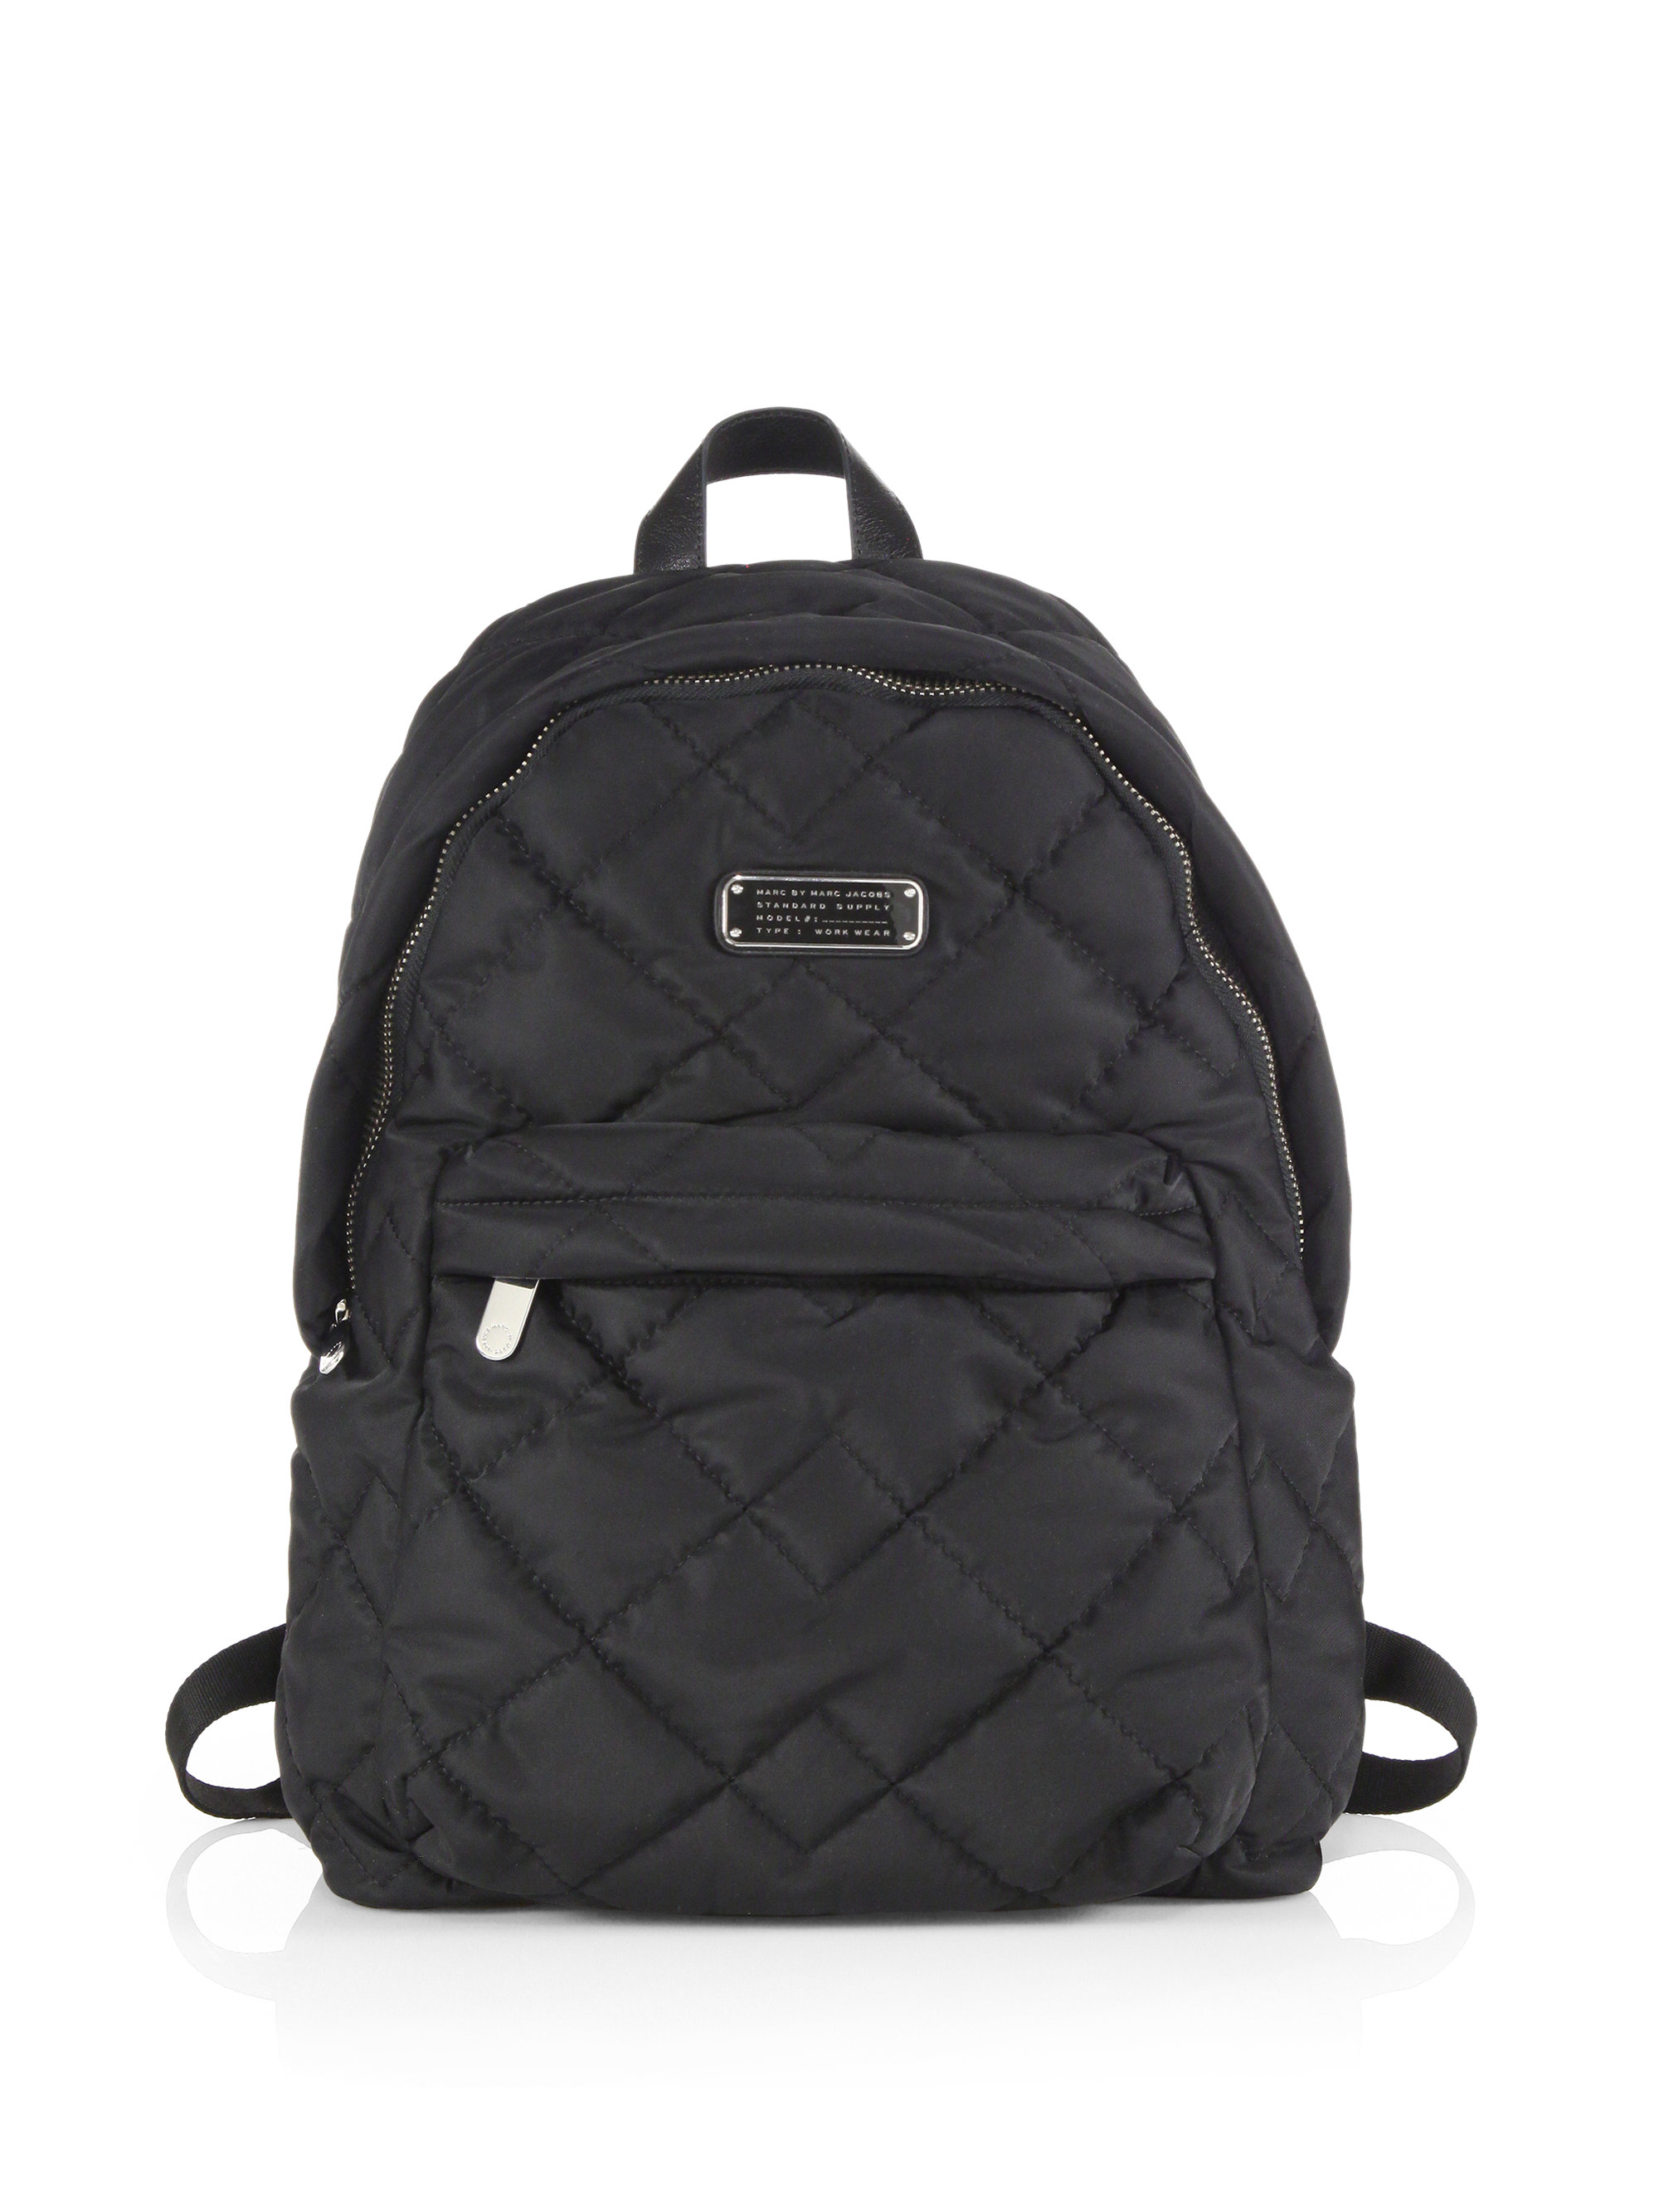 marc by marc jacobs crosby quilted nylon backpack in black lyst. Black Bedroom Furniture Sets. Home Design Ideas